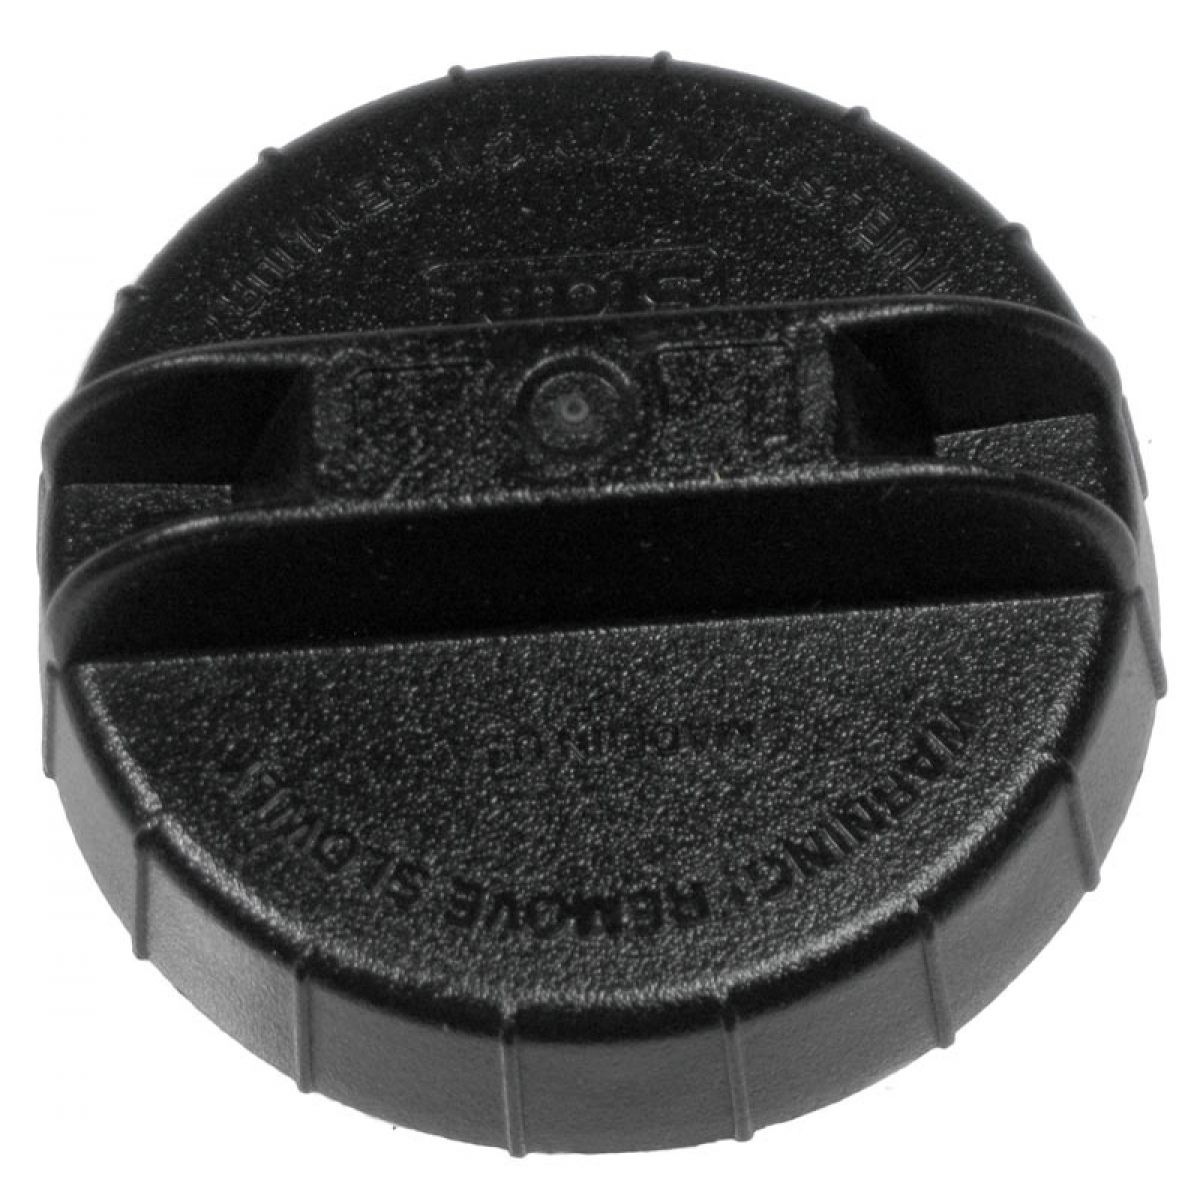 Fuel Tank Gas Cap For Buick Cadillac Chevy Nissan Volvo